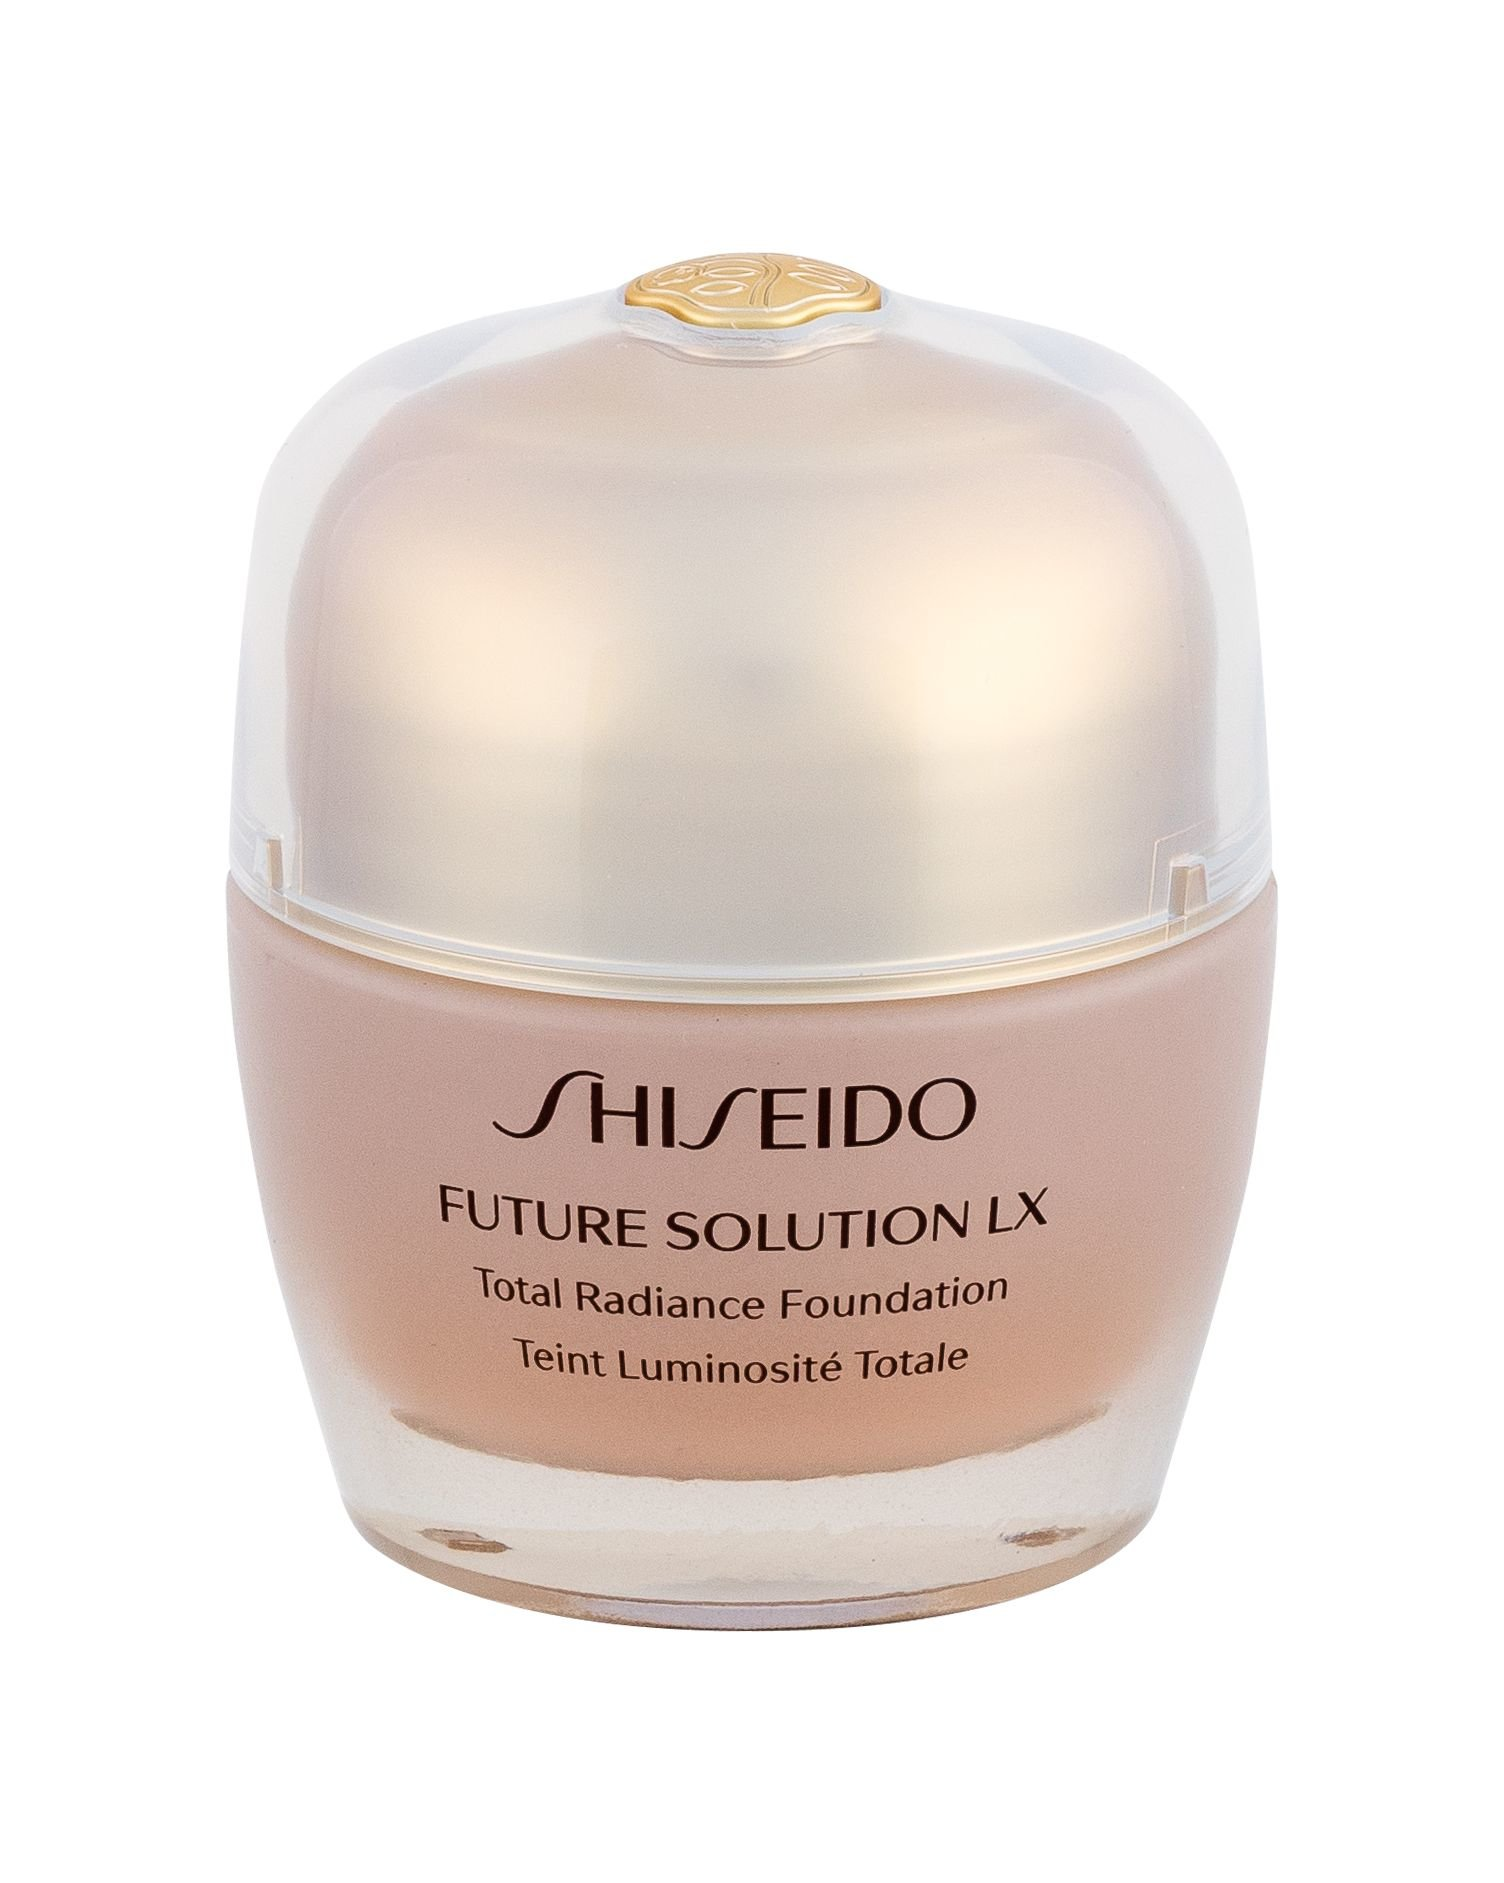 Shiseido Future Solution LX Makeup 30ml R3 Rose